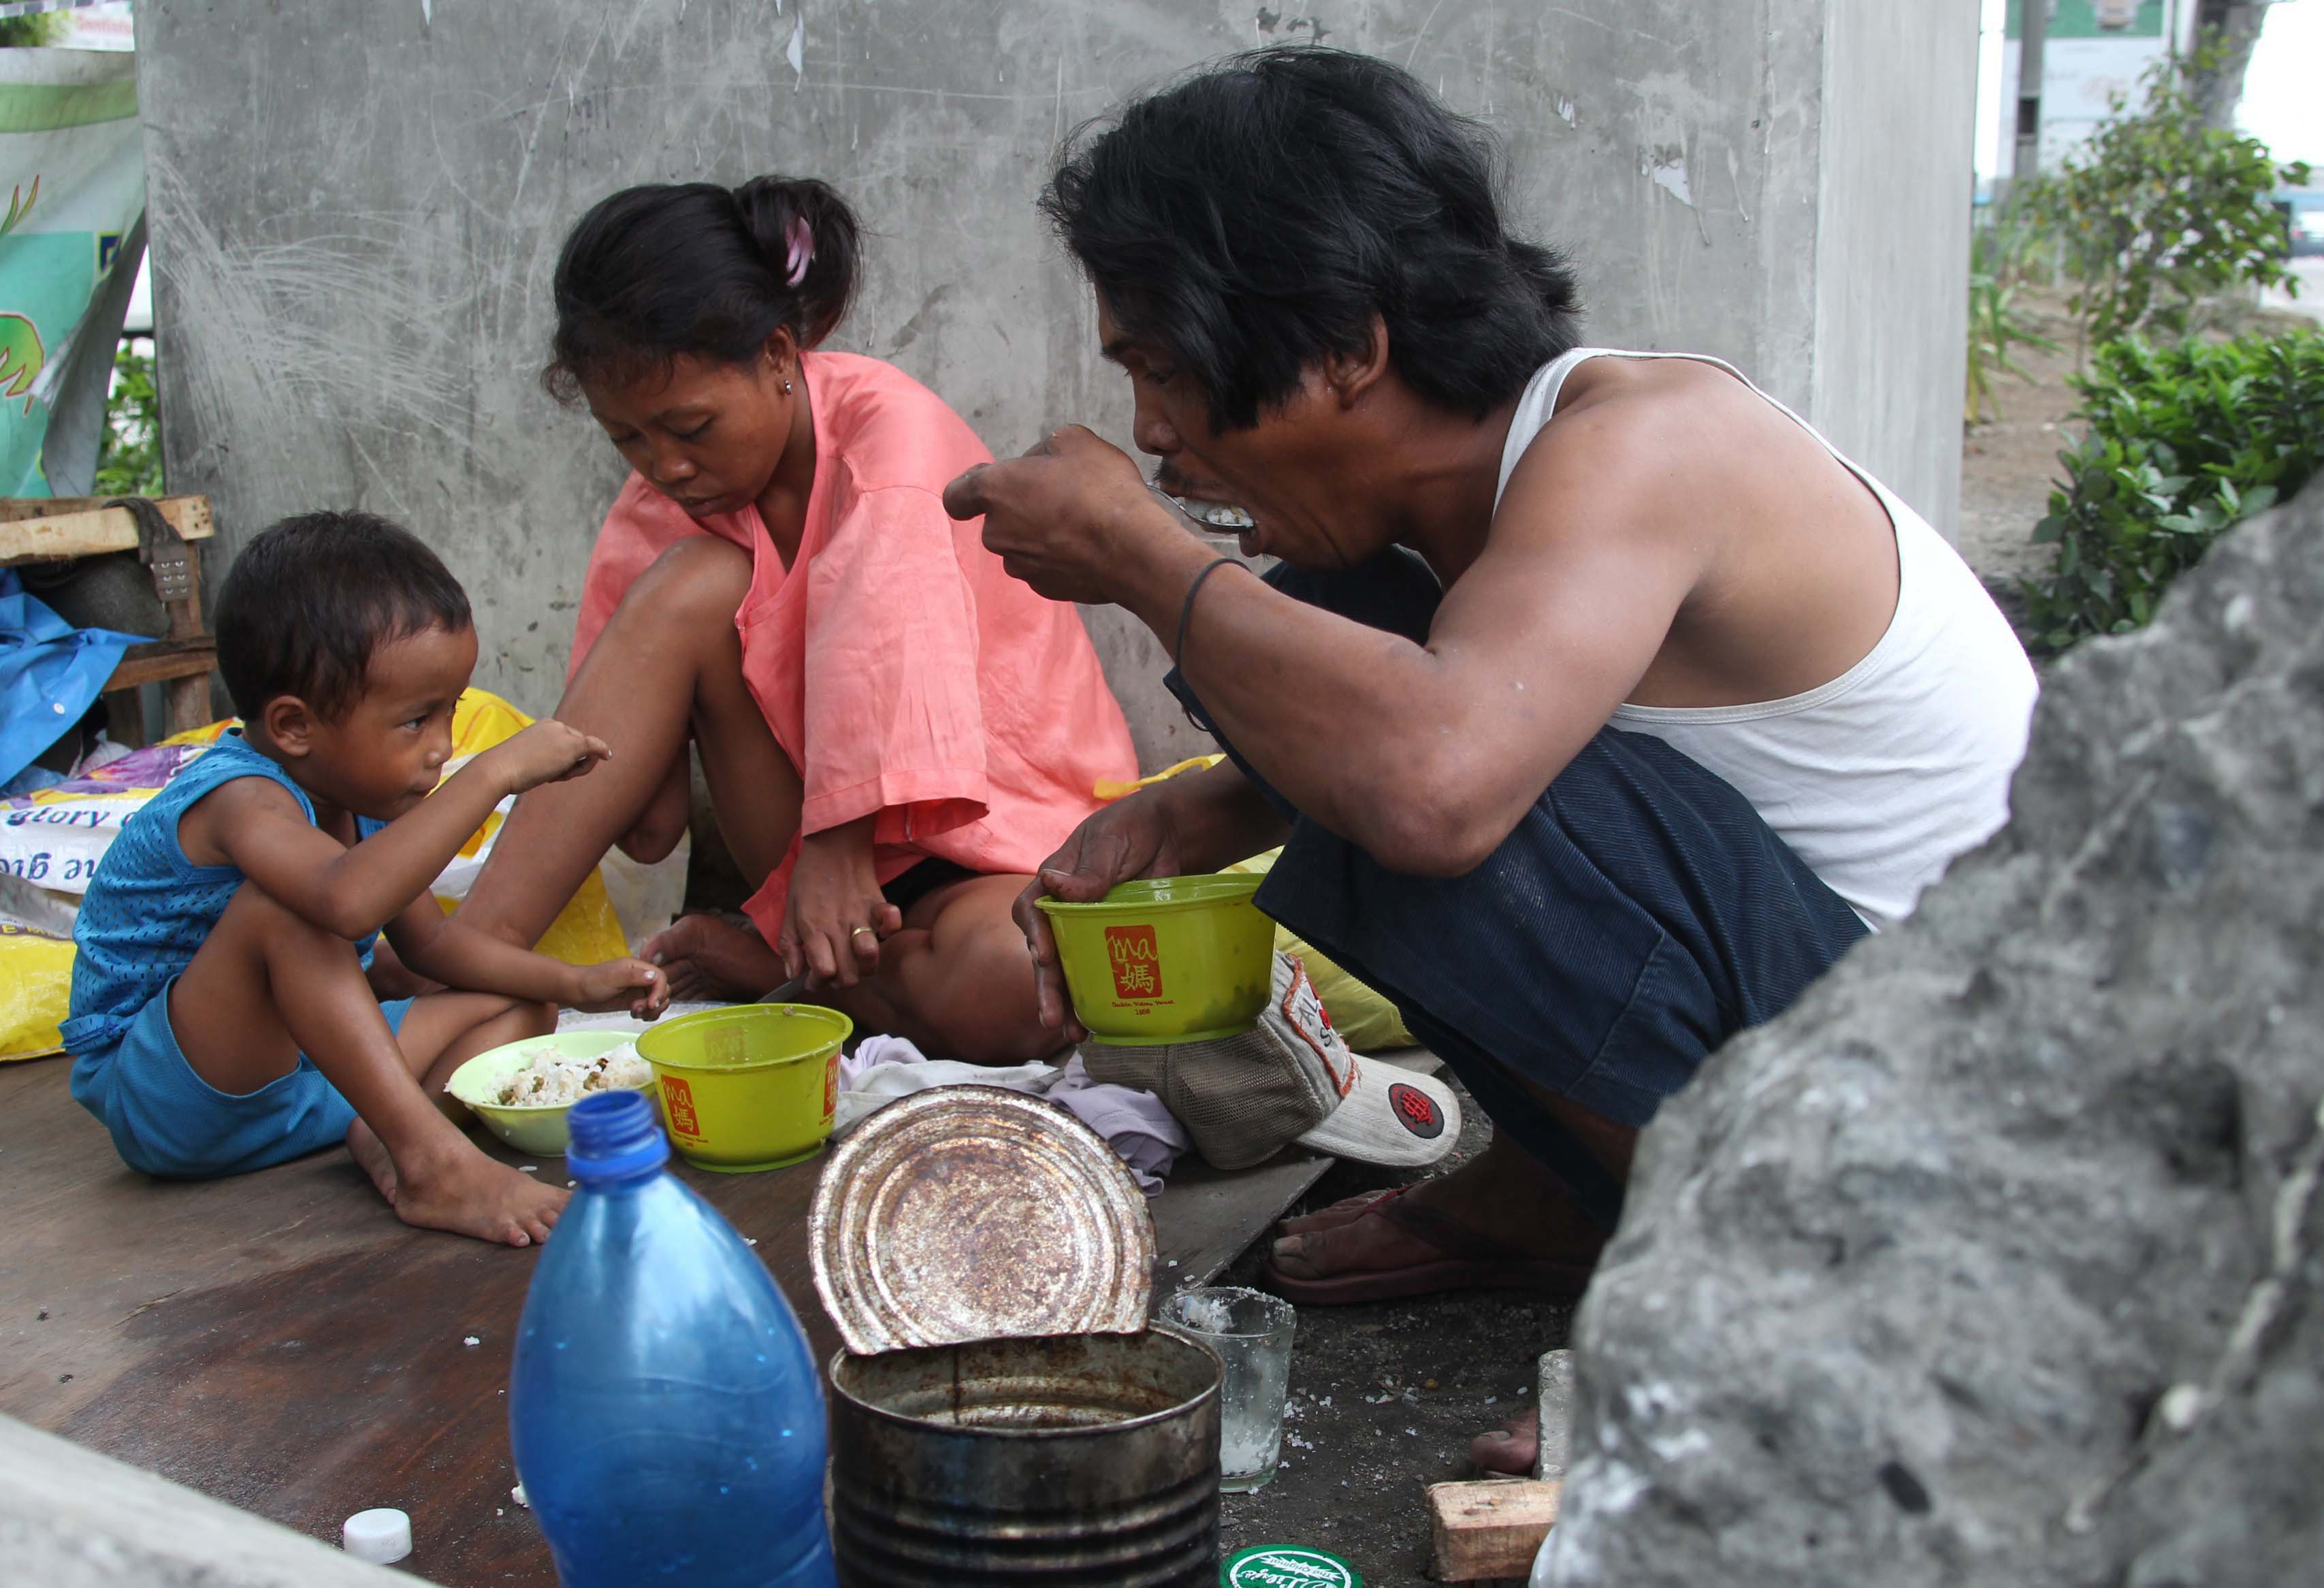 Busaw family leaving in the center island under the Metro Rail Transit along North Edsa in Brgy. Pagasa in Quezon City taking a lunch break event if it is danger zone and air pollution cause of smoke vehicles........photo/boy santos